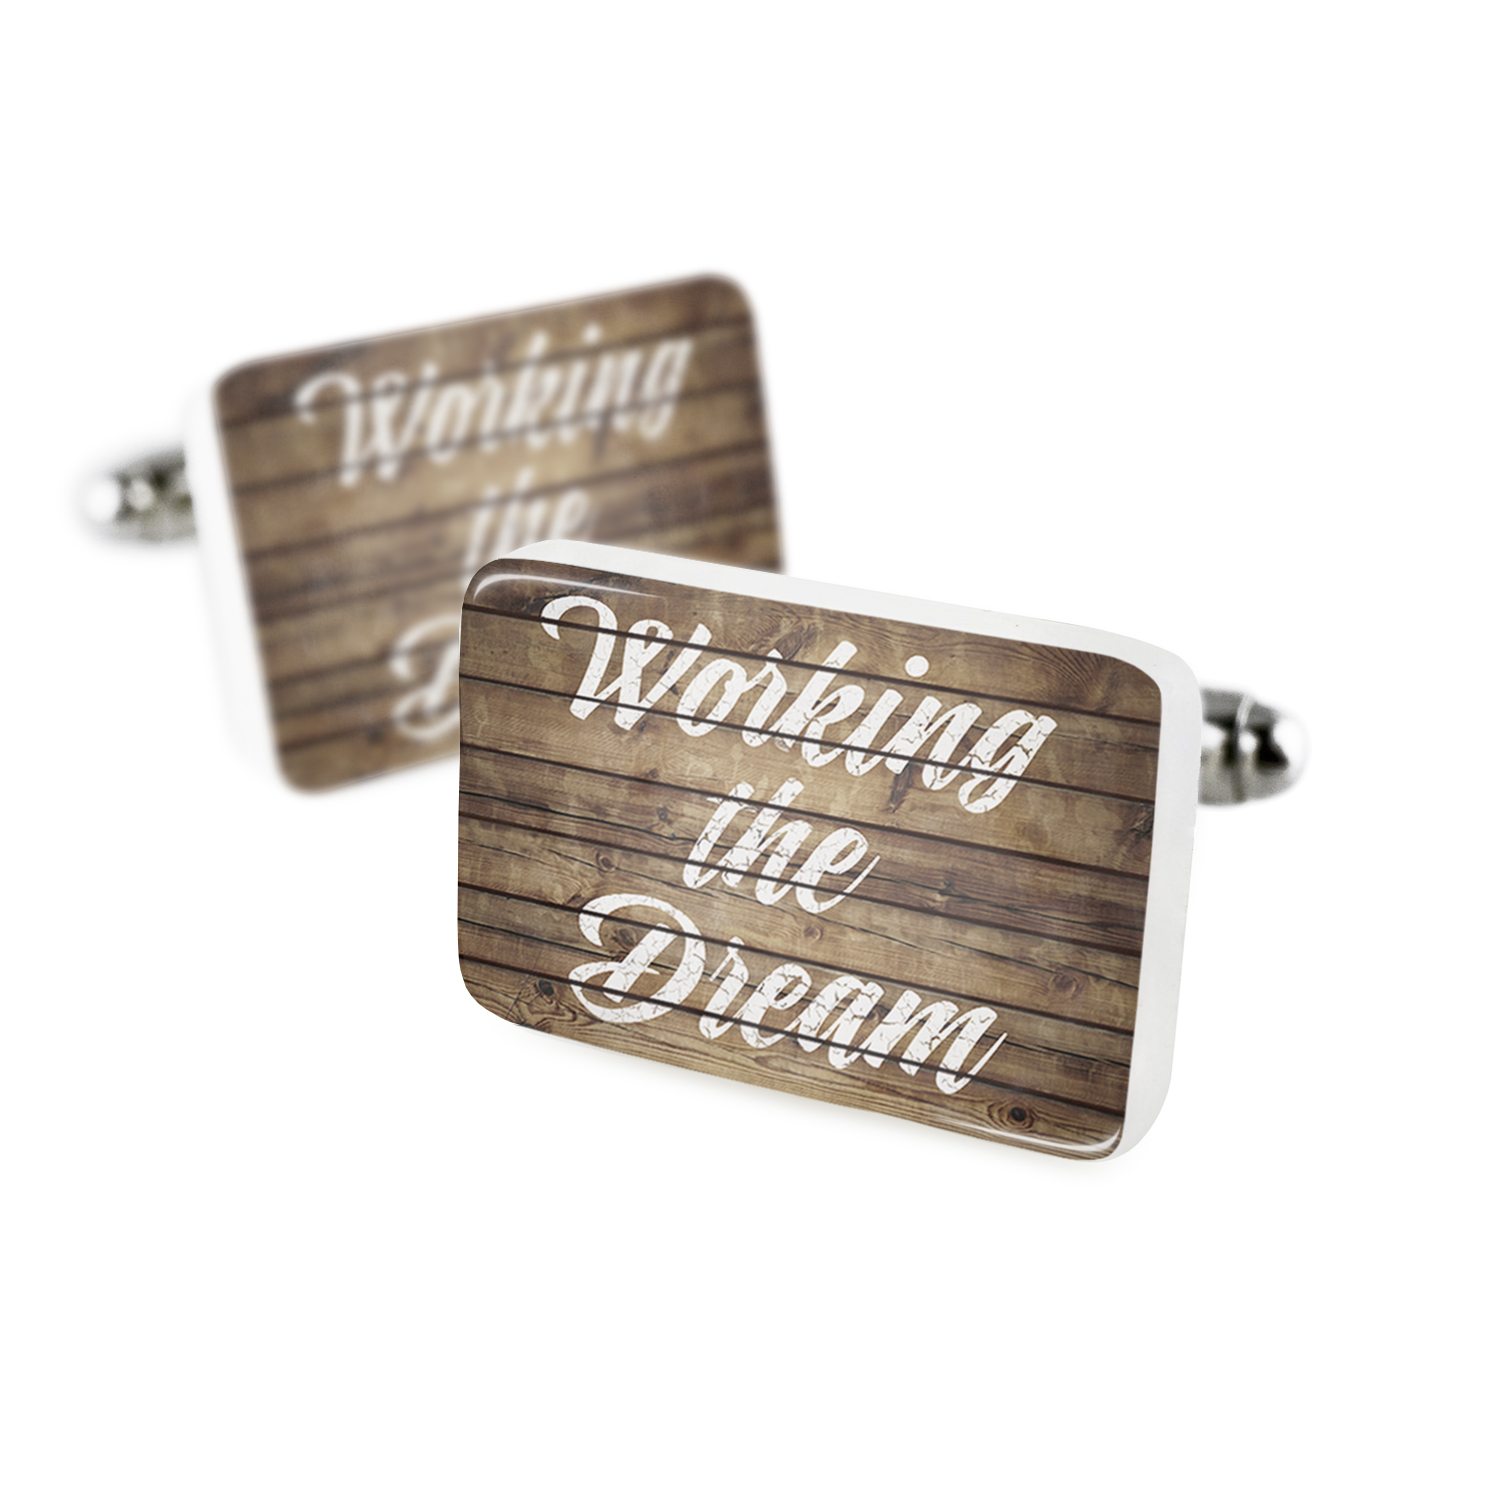 Cufflinks Painted Wood Working the Dream Porcelain Ceramic NEONBLOND